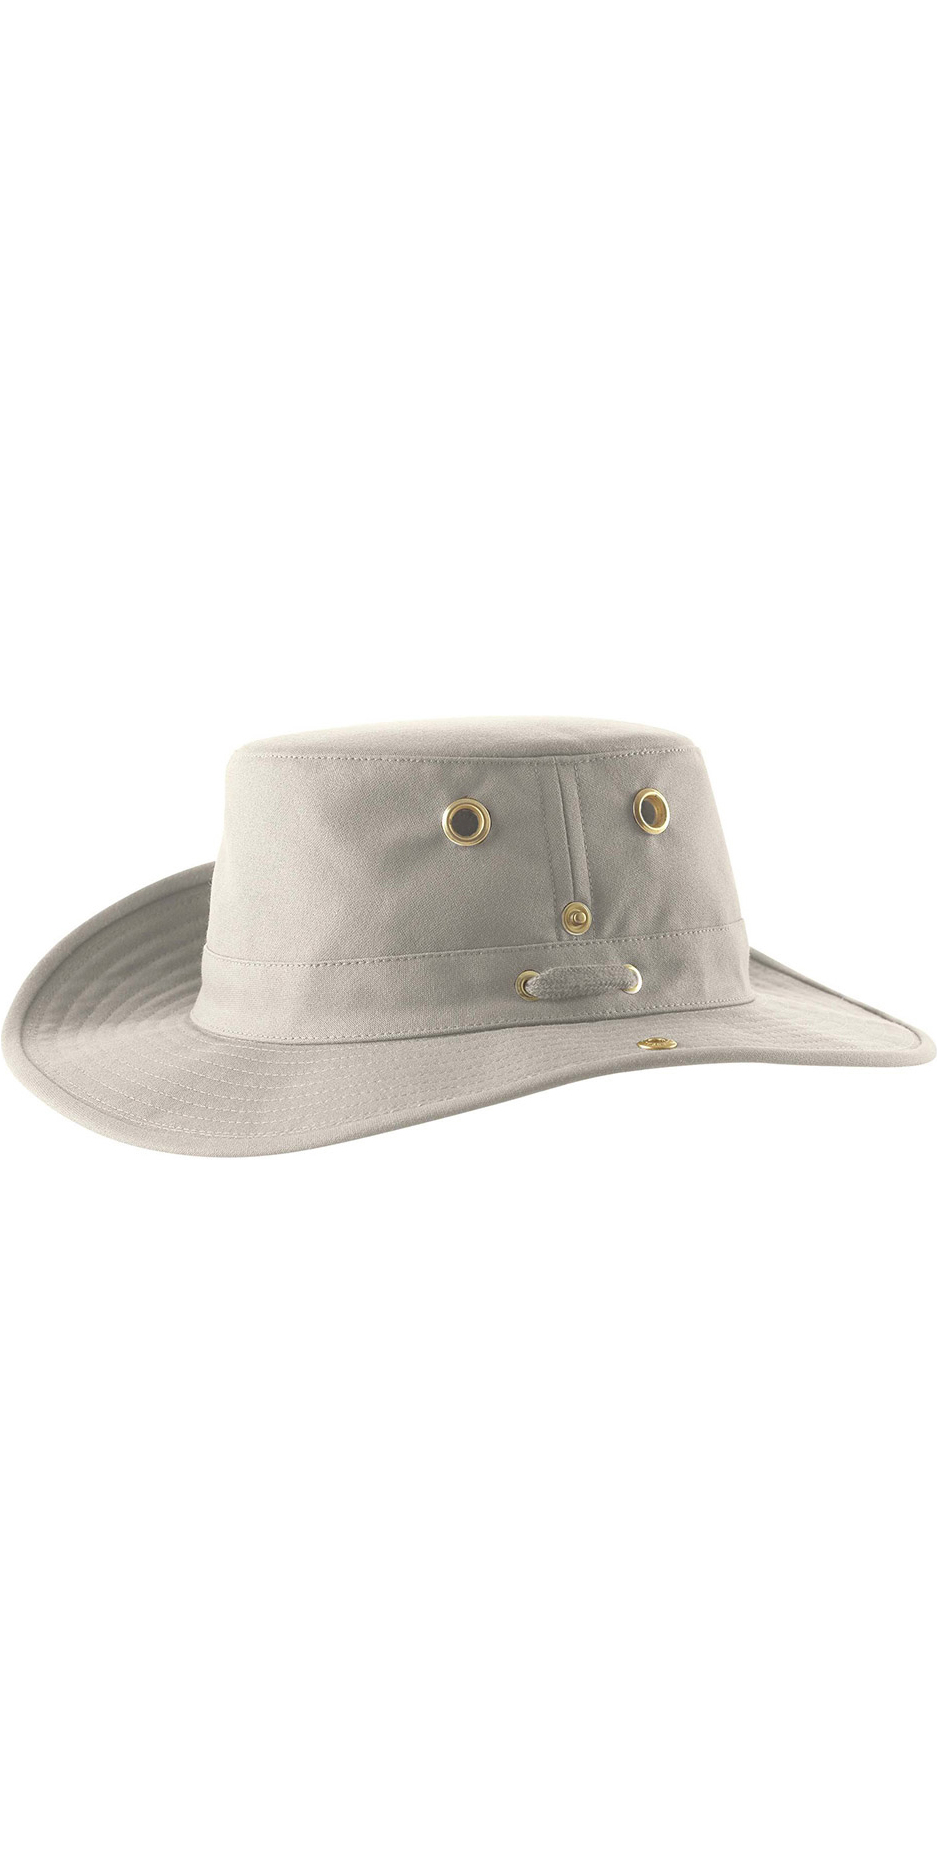 f45d4075adf 2019 Tilley T3 Snap-up Brimmed Hat - Natural Green - T3 - Technical Hats  Caps   Visors - Gloves